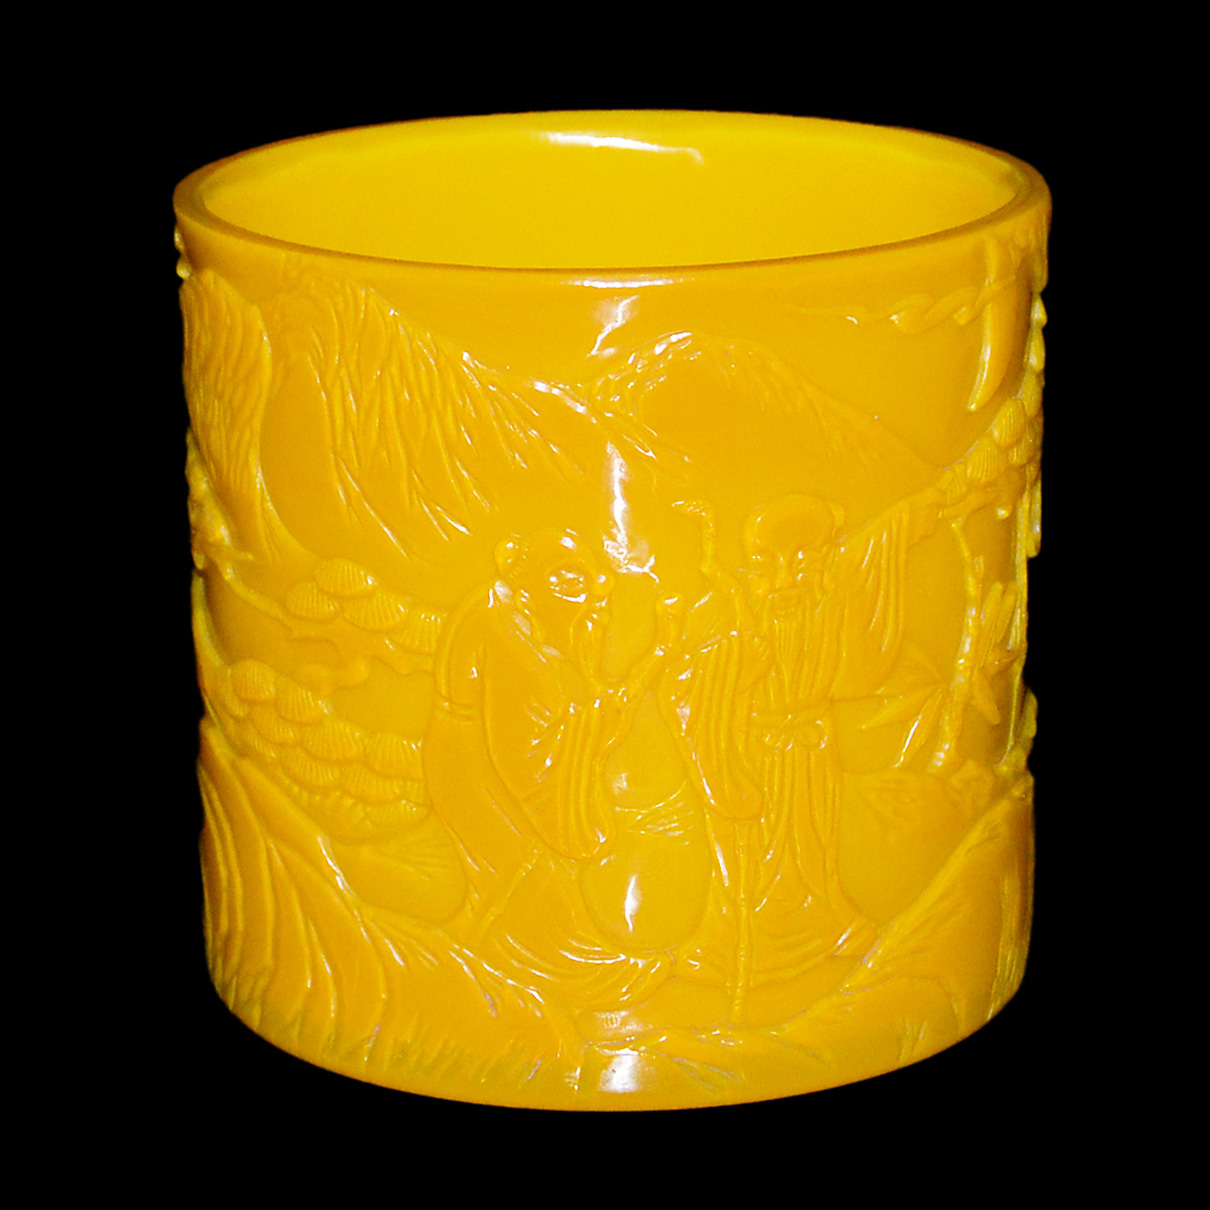 Lot 53 - 料彩黃地雕三老玩月筆筒 A Yellow Glass Brush Pot with Relief Carved Three Scholars Height: 5⅝ in (14.3 cm)